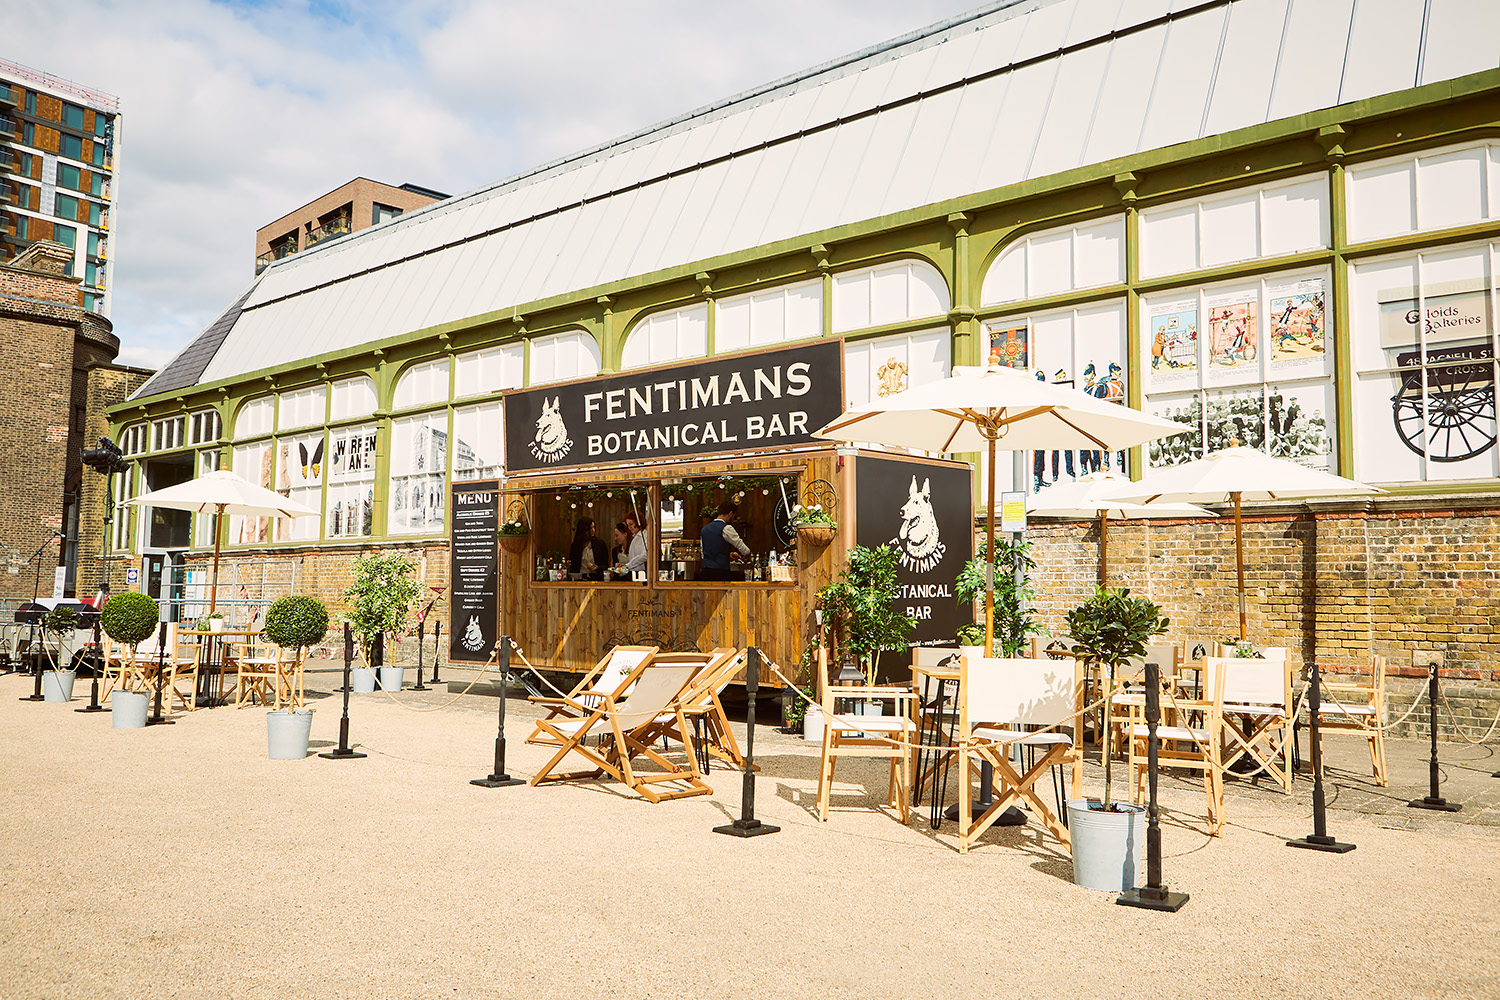 Fentimans Botanical Bar Quirky Group Bespoke Design and Build Project